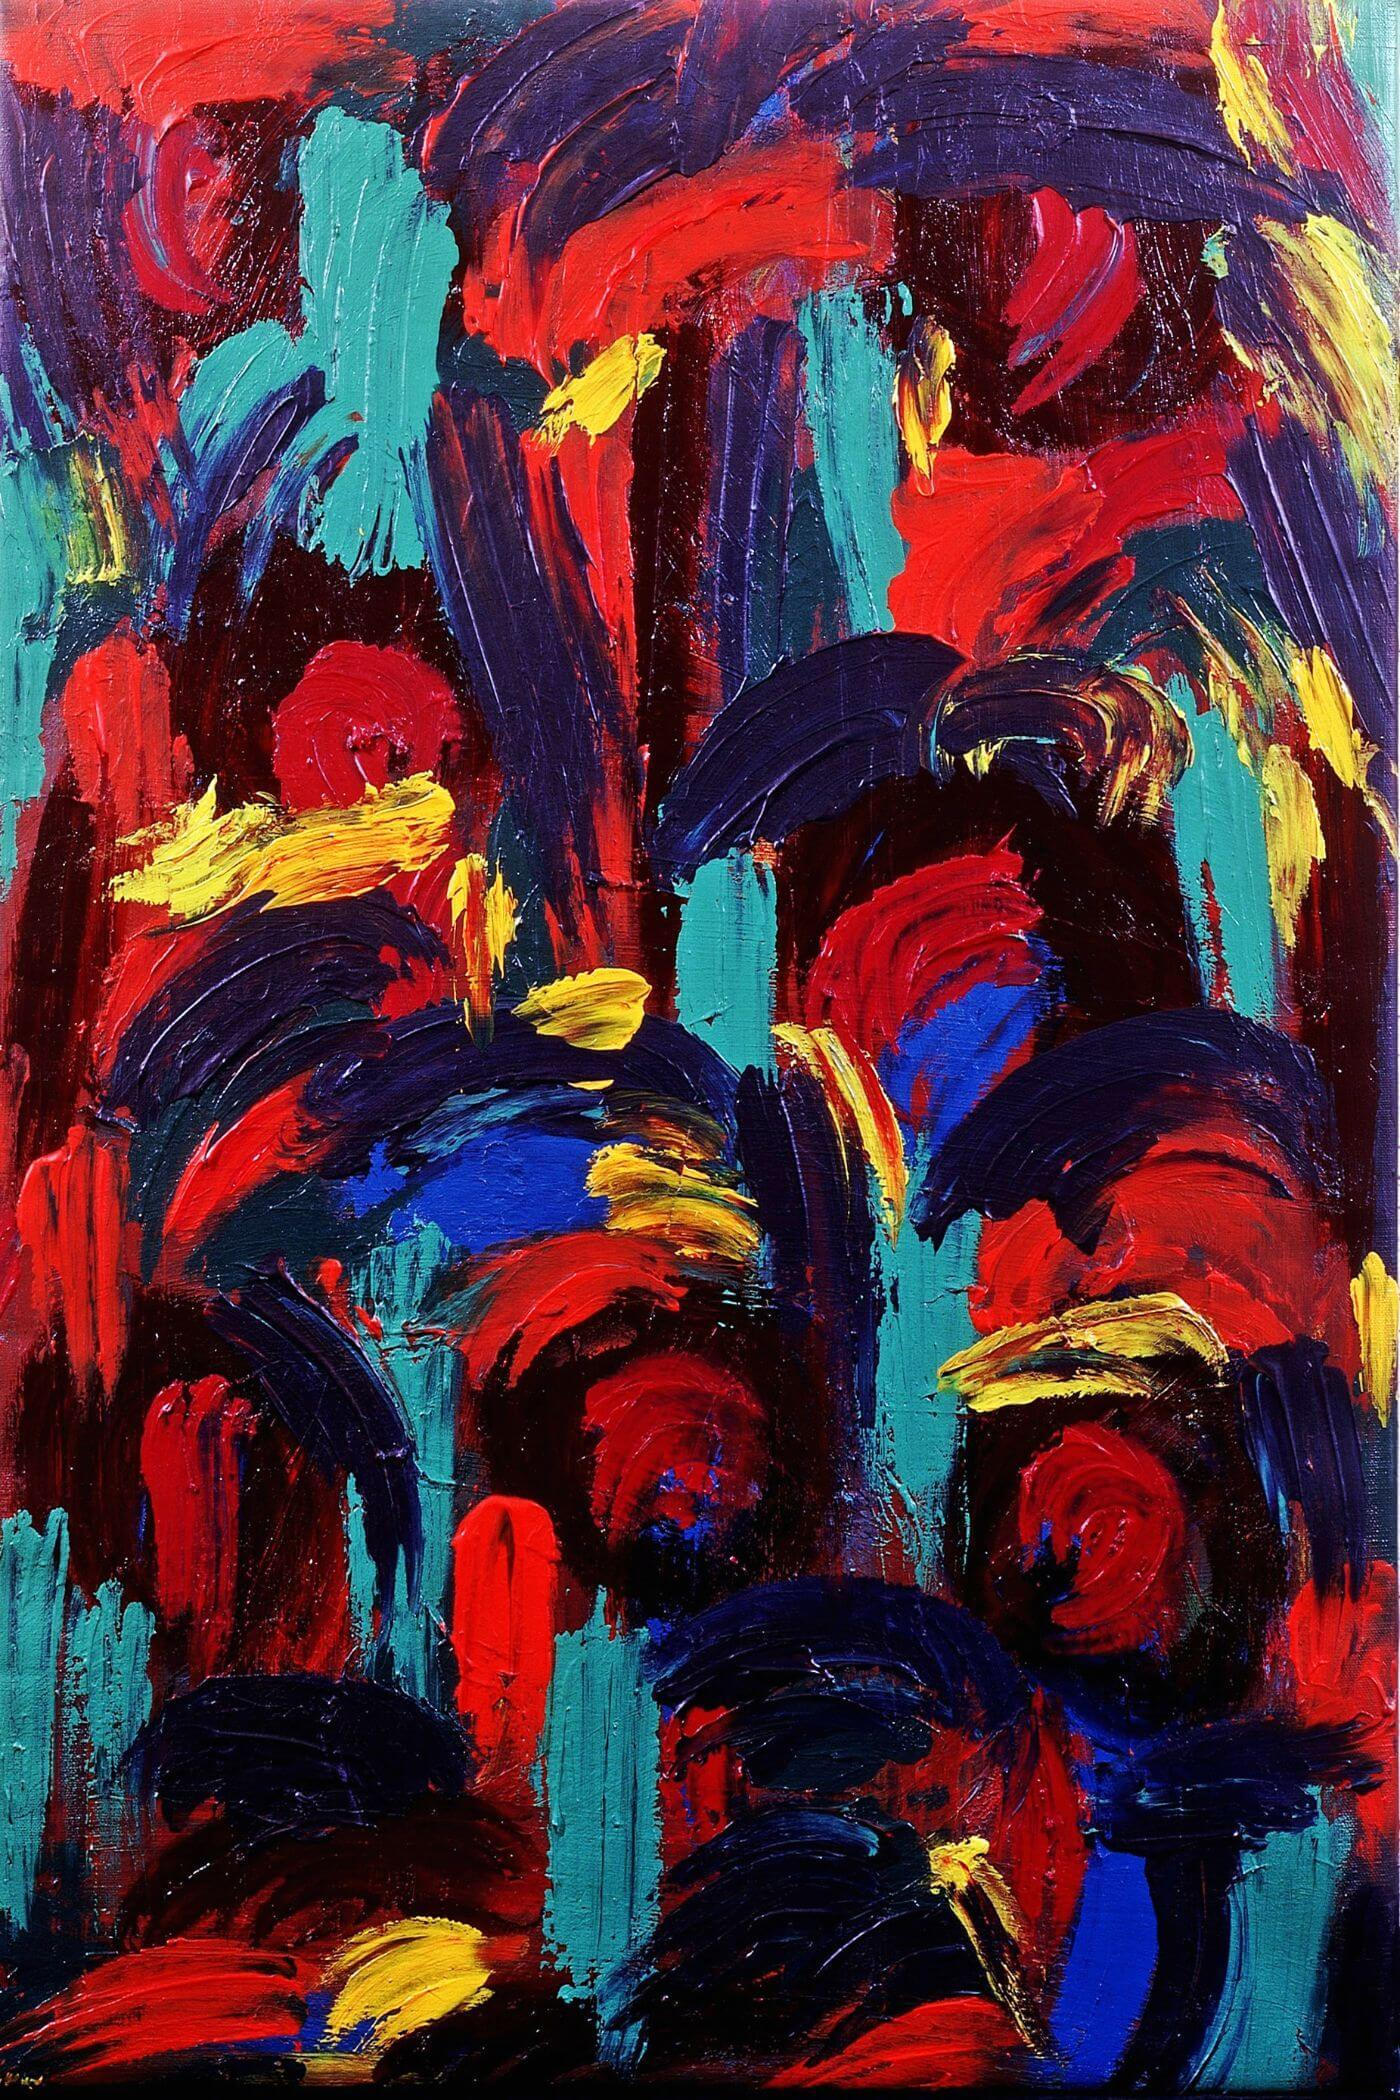 Hand Painted - Abstract Expressionism Painting - Framed Prints